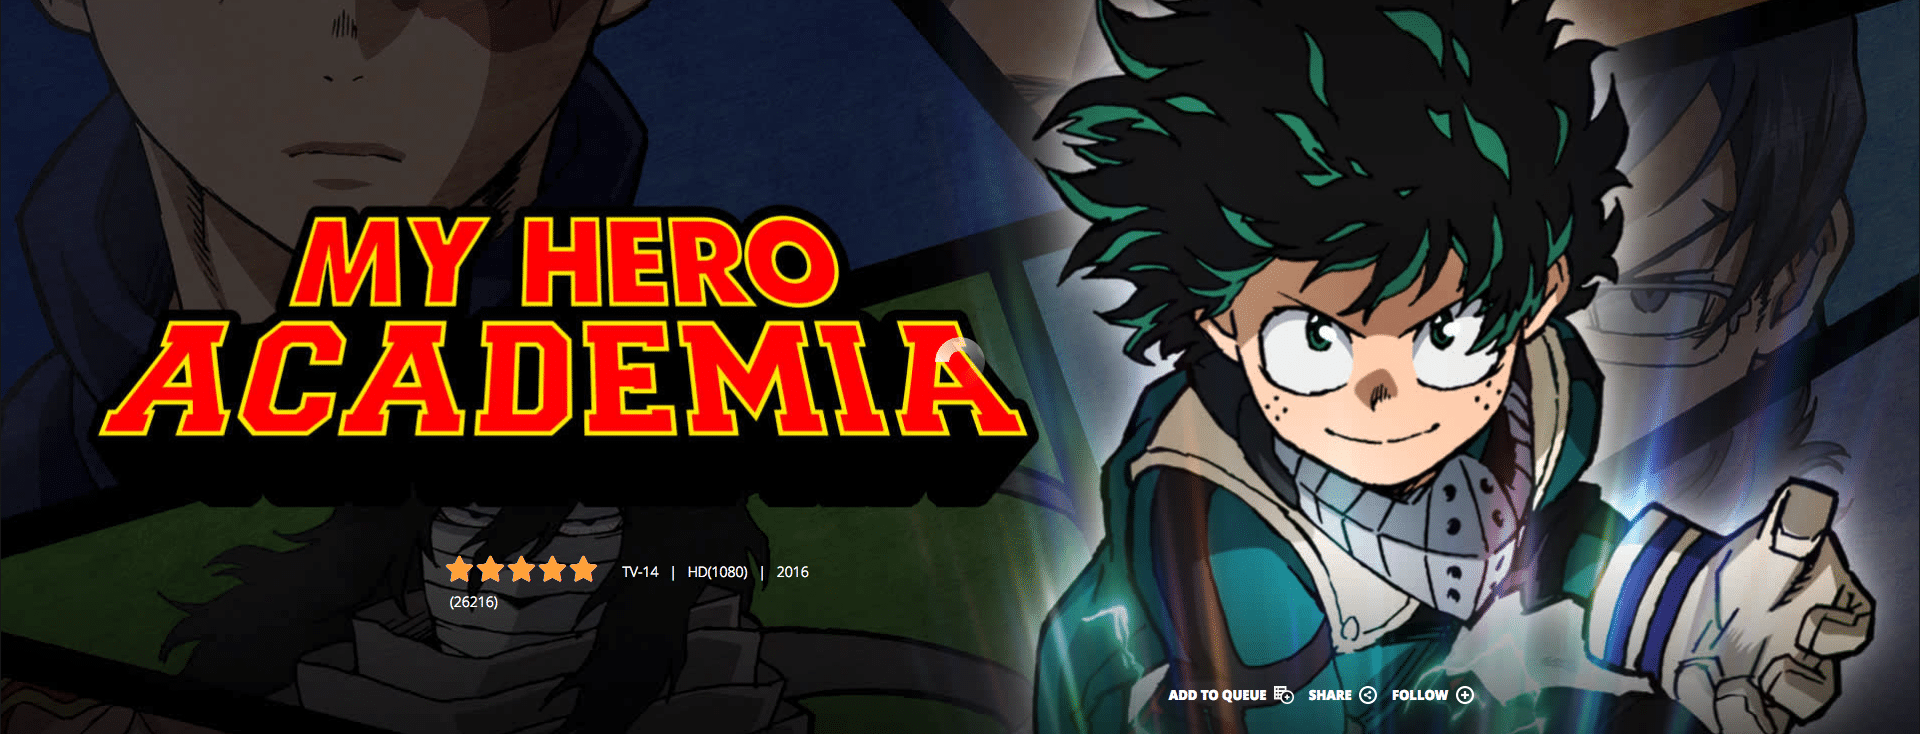 Funimation my hero academia watch anime online anime streaming services free